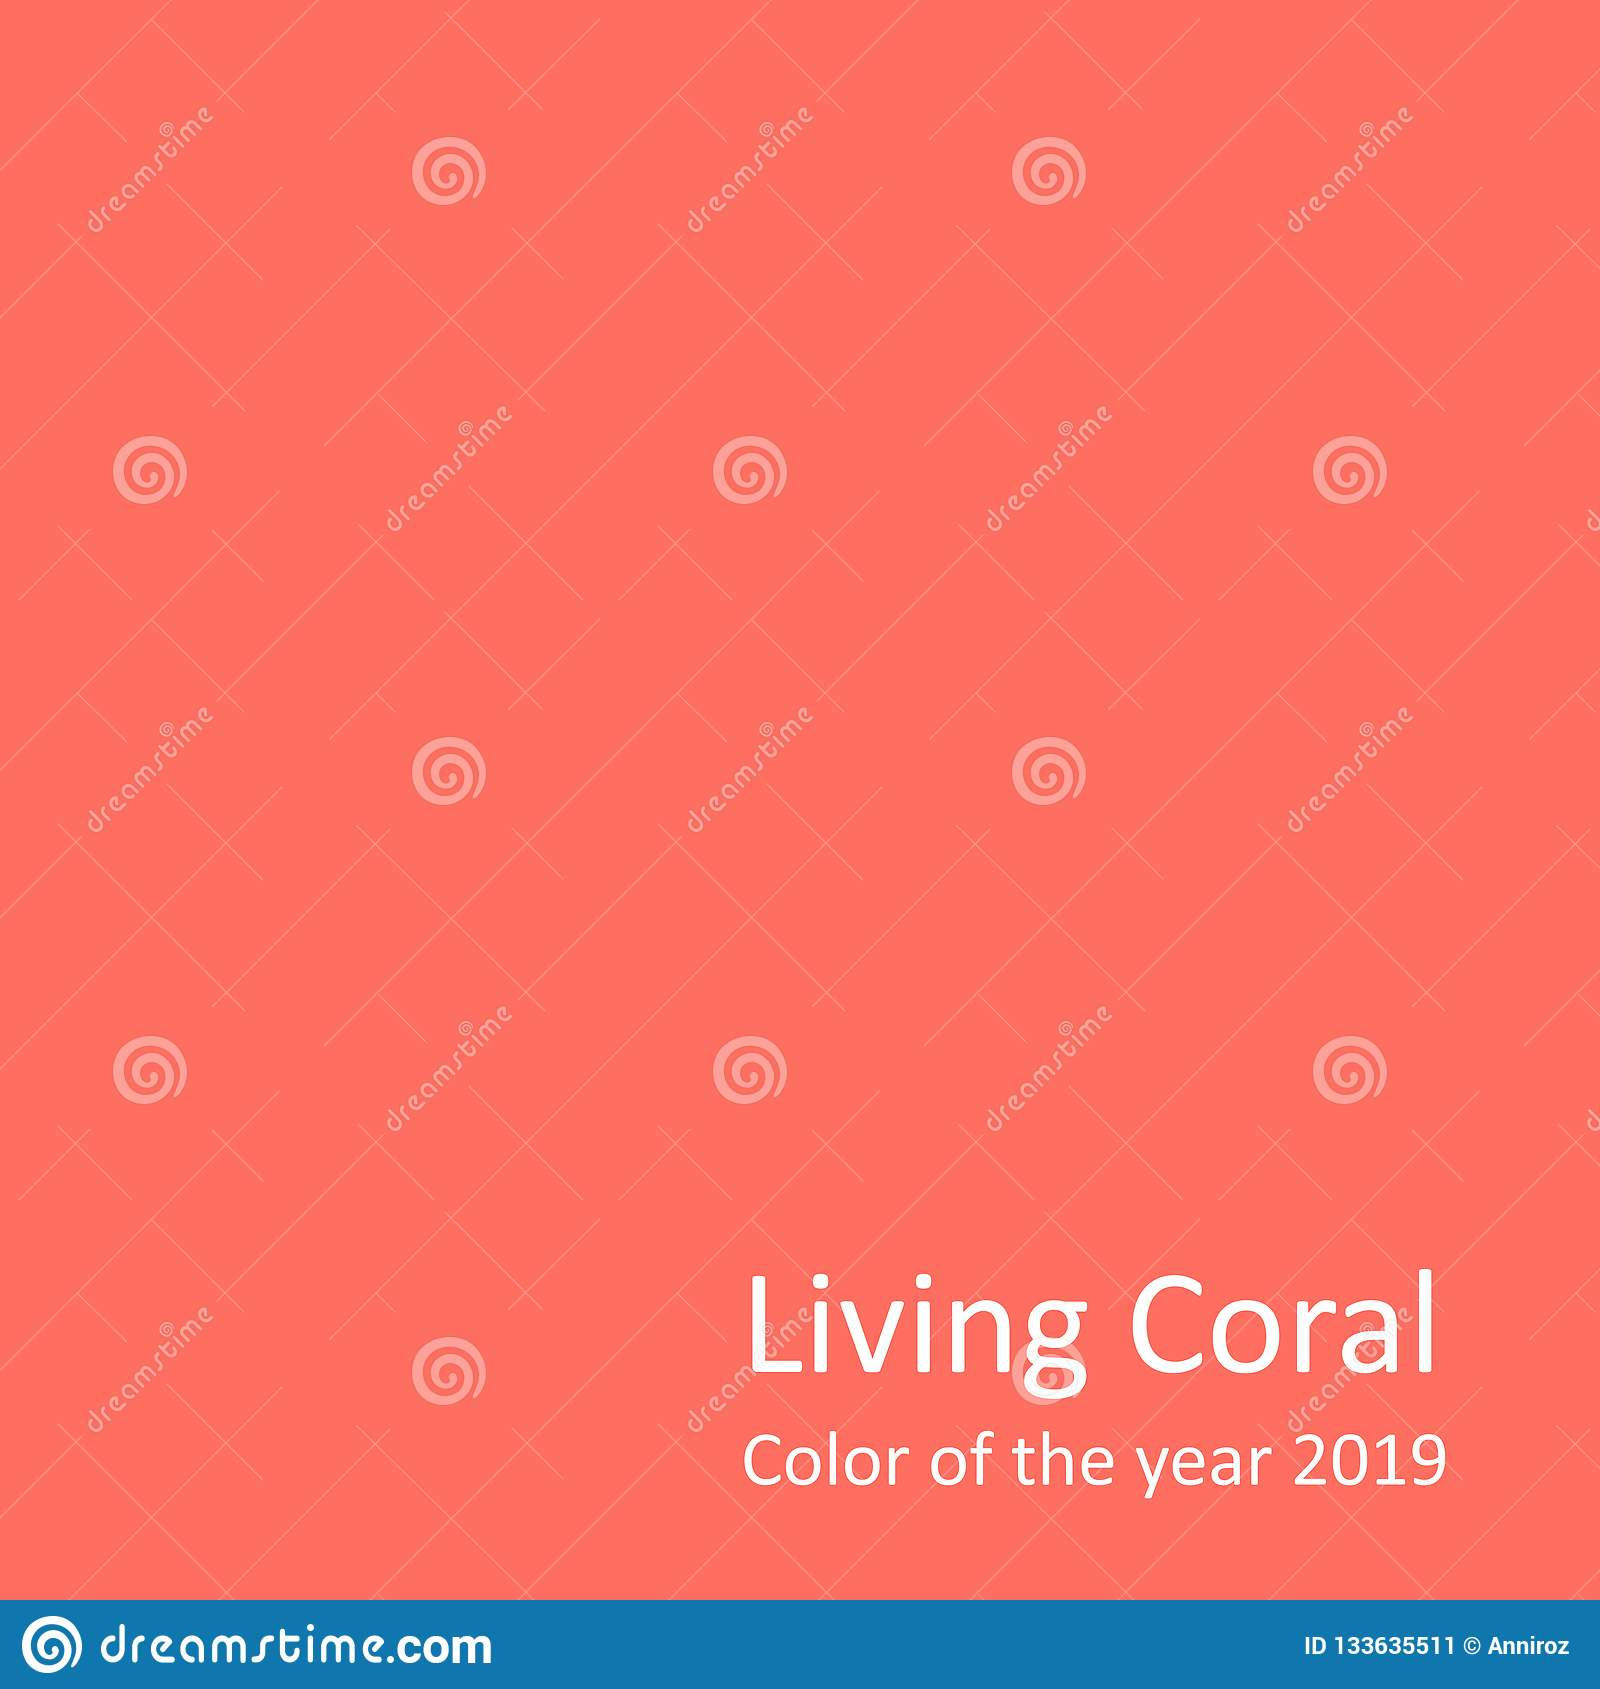 Living Coral Color Of The Year 2019 Stock Illustration